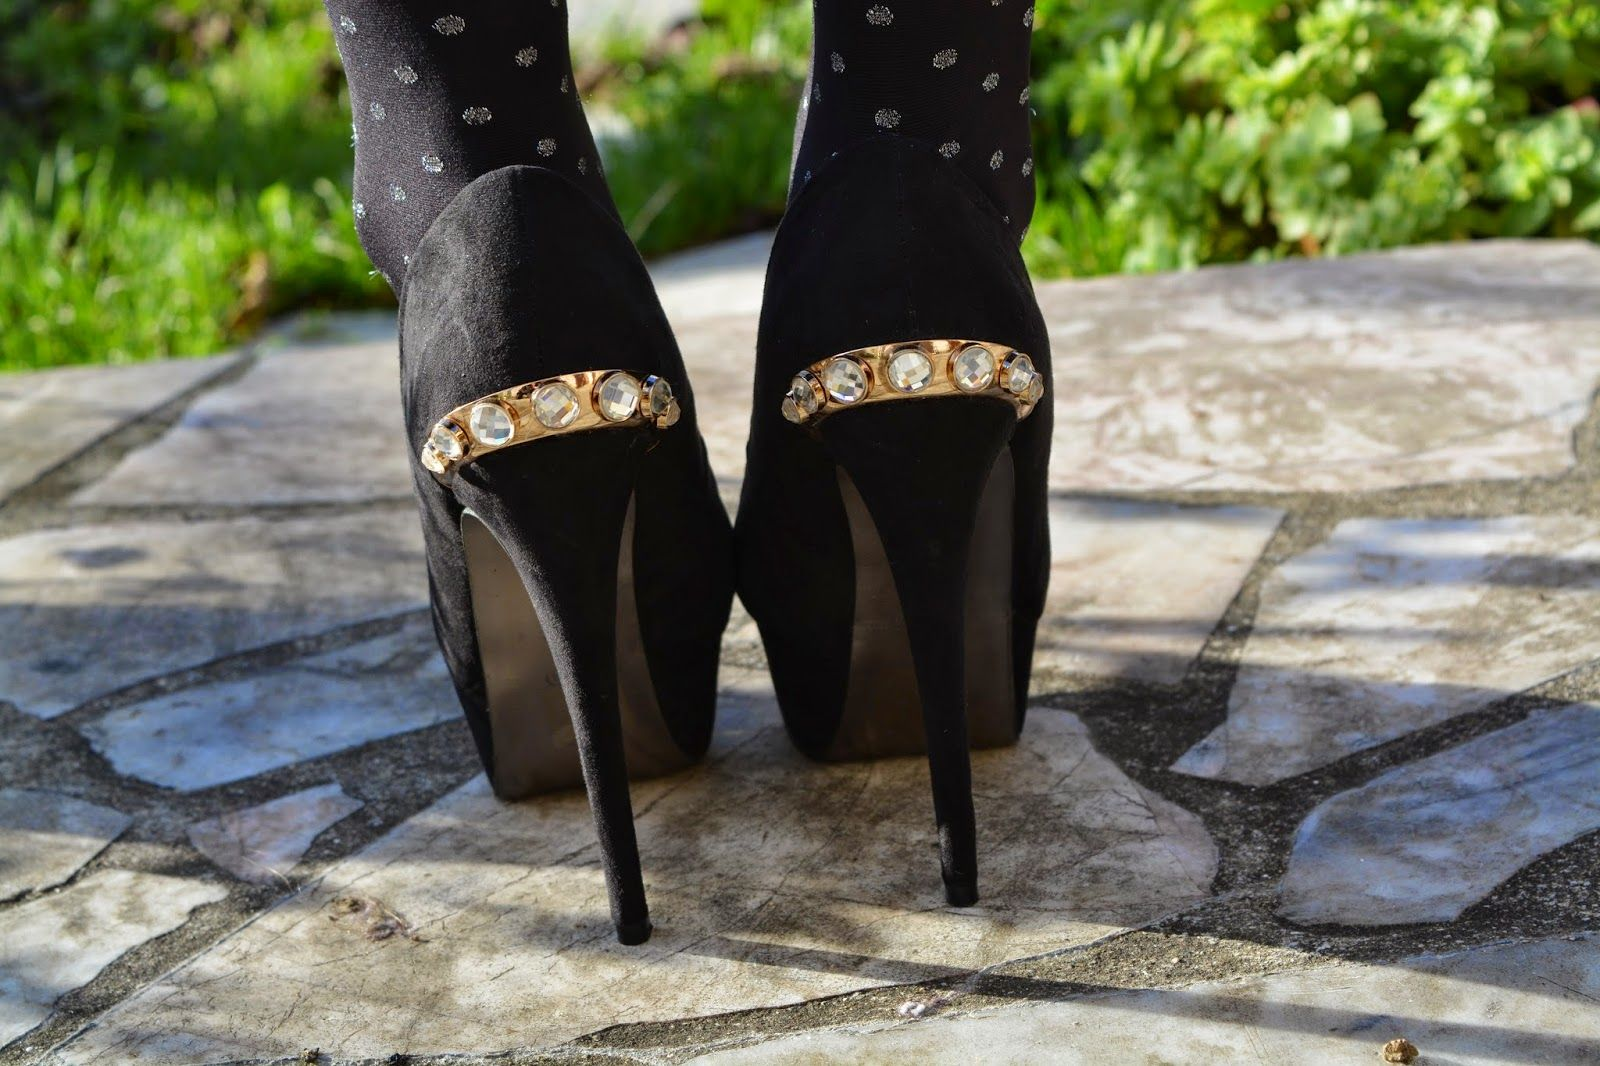 #look #brillant #strass #jupe #talonshauts #escarpins #tenue #blogger #bloggeuse #bloggeusemode #mode #modeuse #style #shoes #pull #french #frenchbloggers #shoes